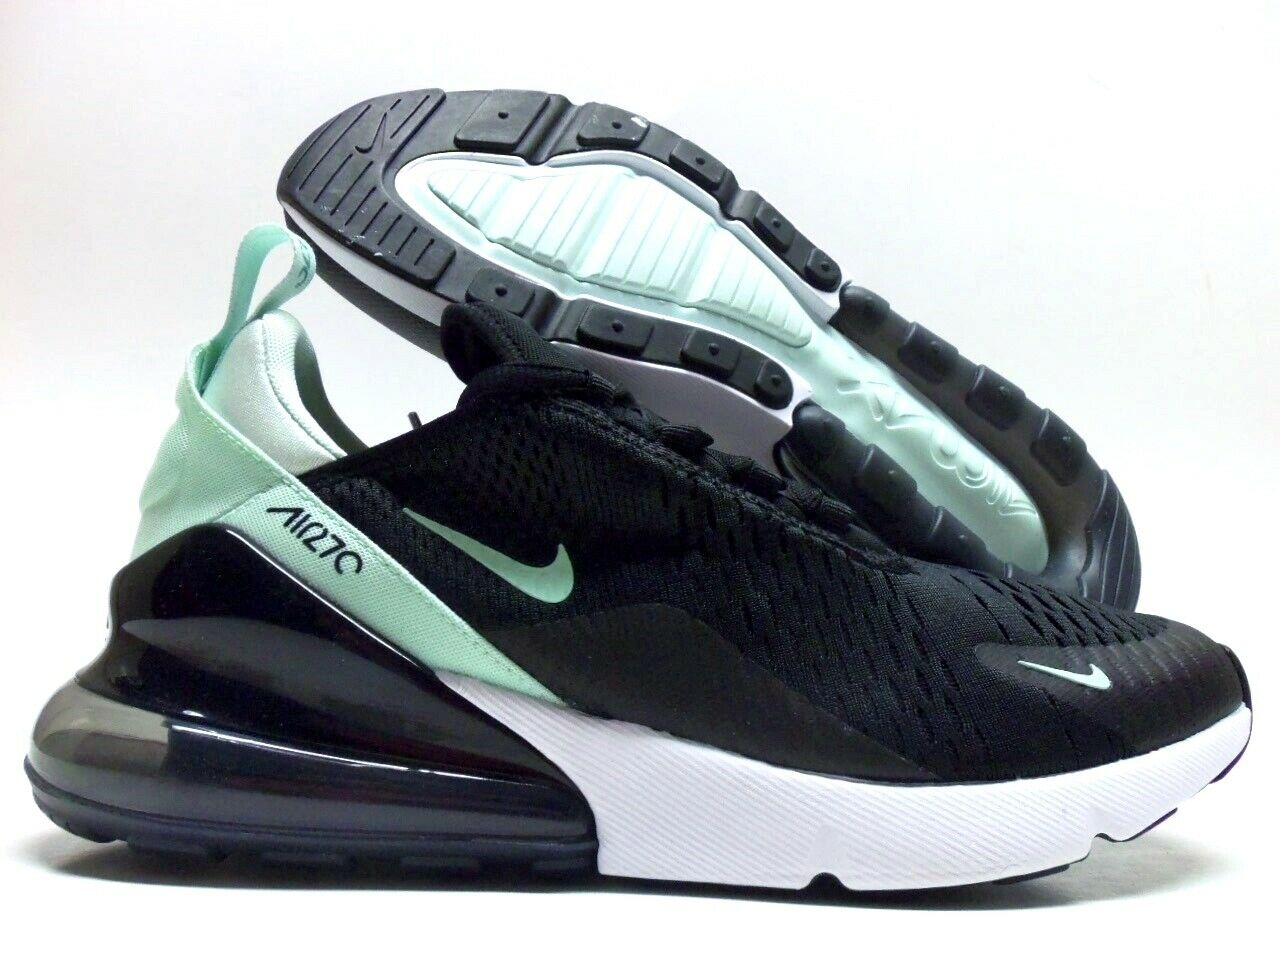 NIKE AIR MAX 270 BLACK IGLOO-HYPER TURQ SIZE WOMEN'S 12 MEN'S 10.5 [AH6789-008]